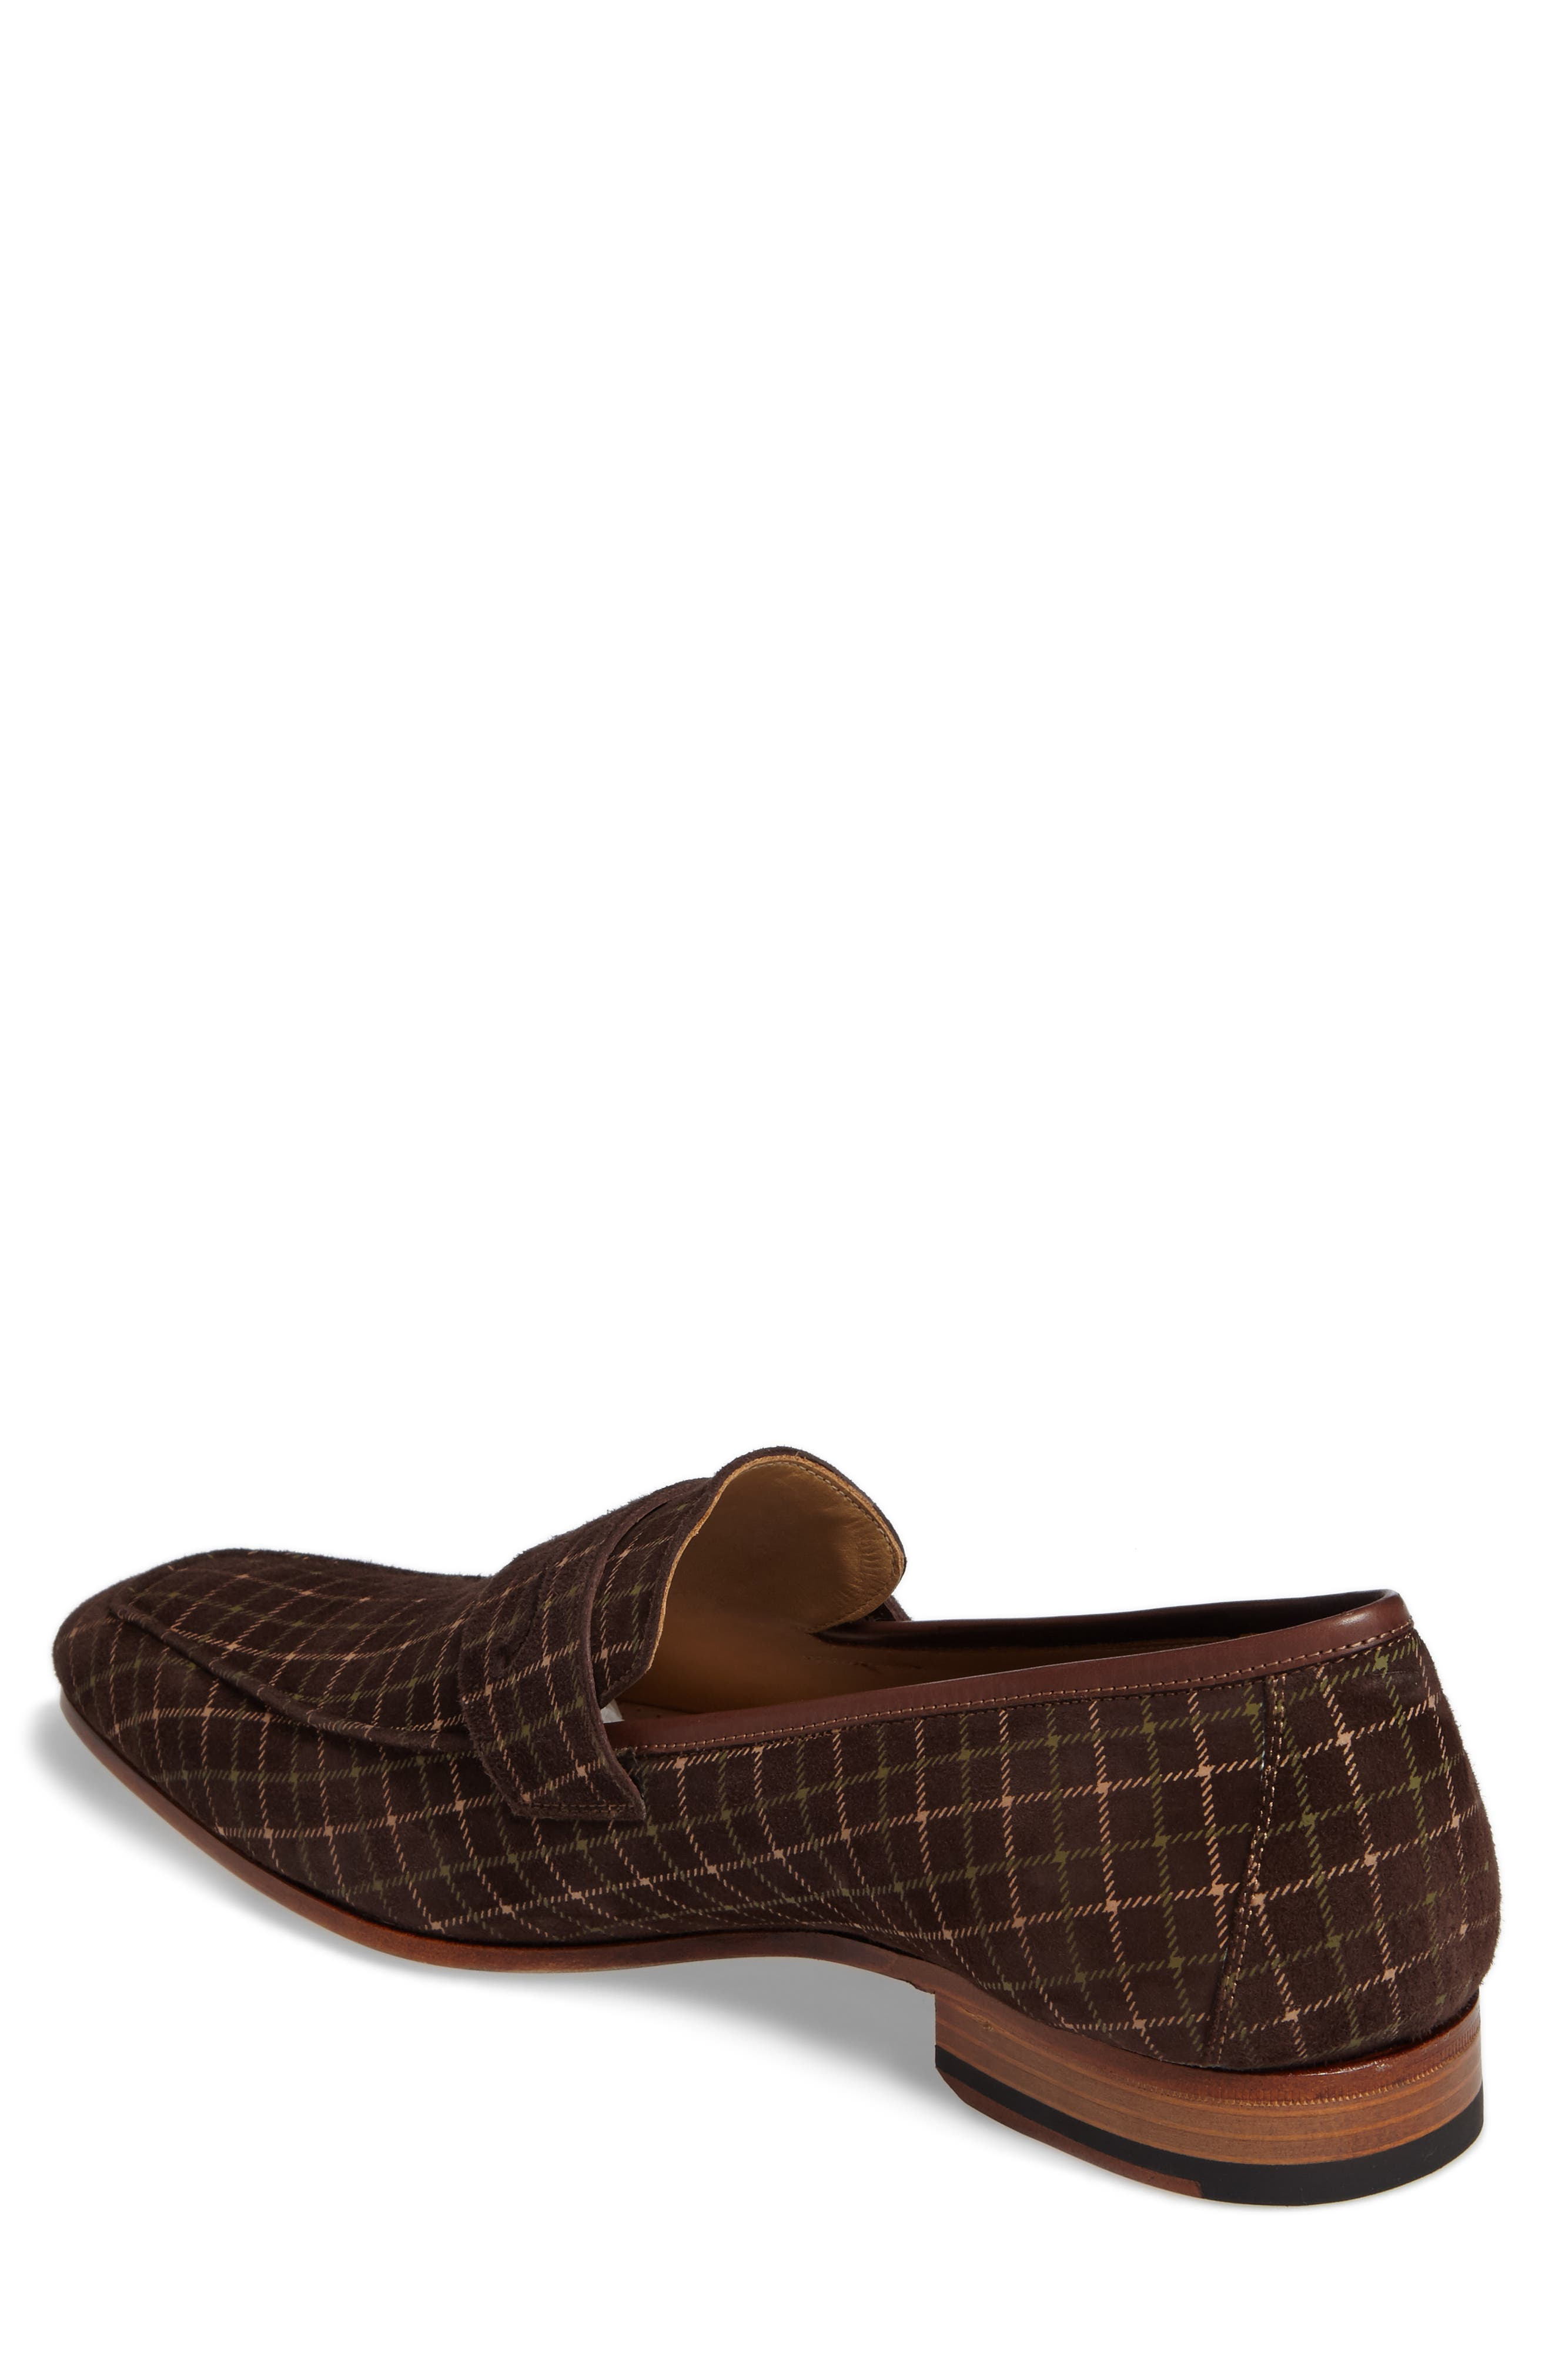 Galen Tattersall Penny Loafer,                             Alternate thumbnail 2, color,                             BROWN SUEDE